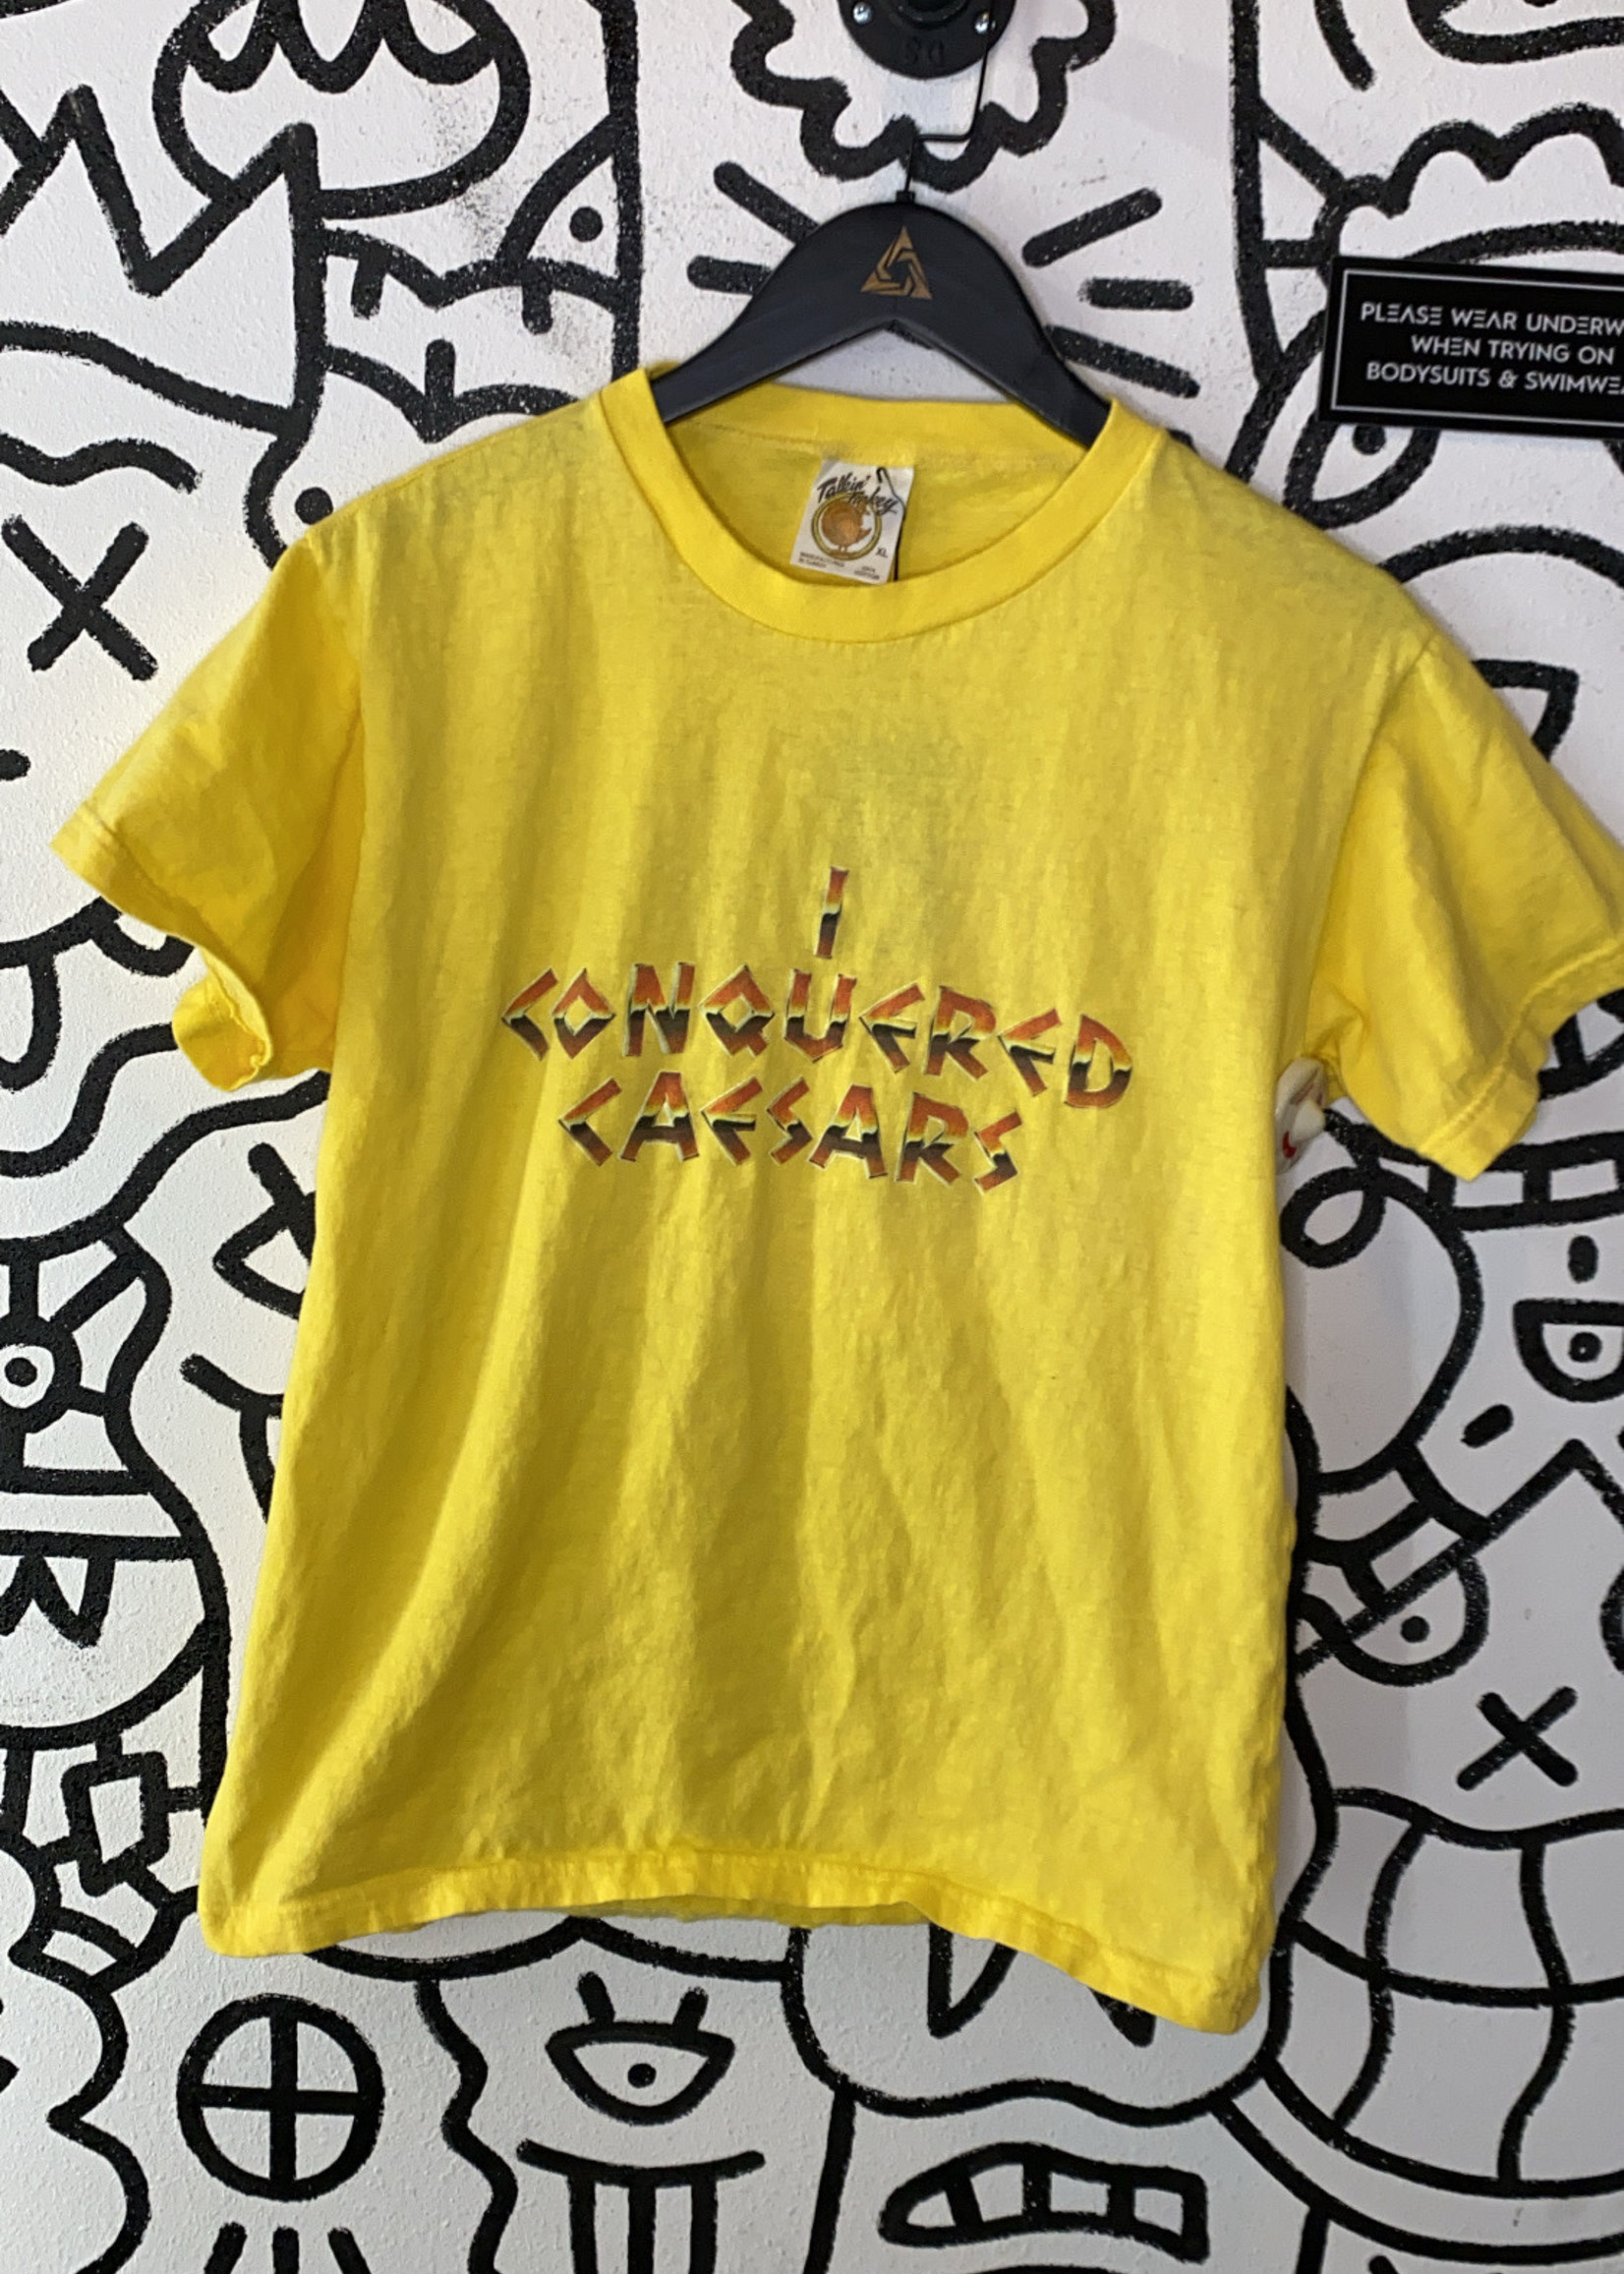 I Conquered Caesars Vintage Yellow Tee Women's L